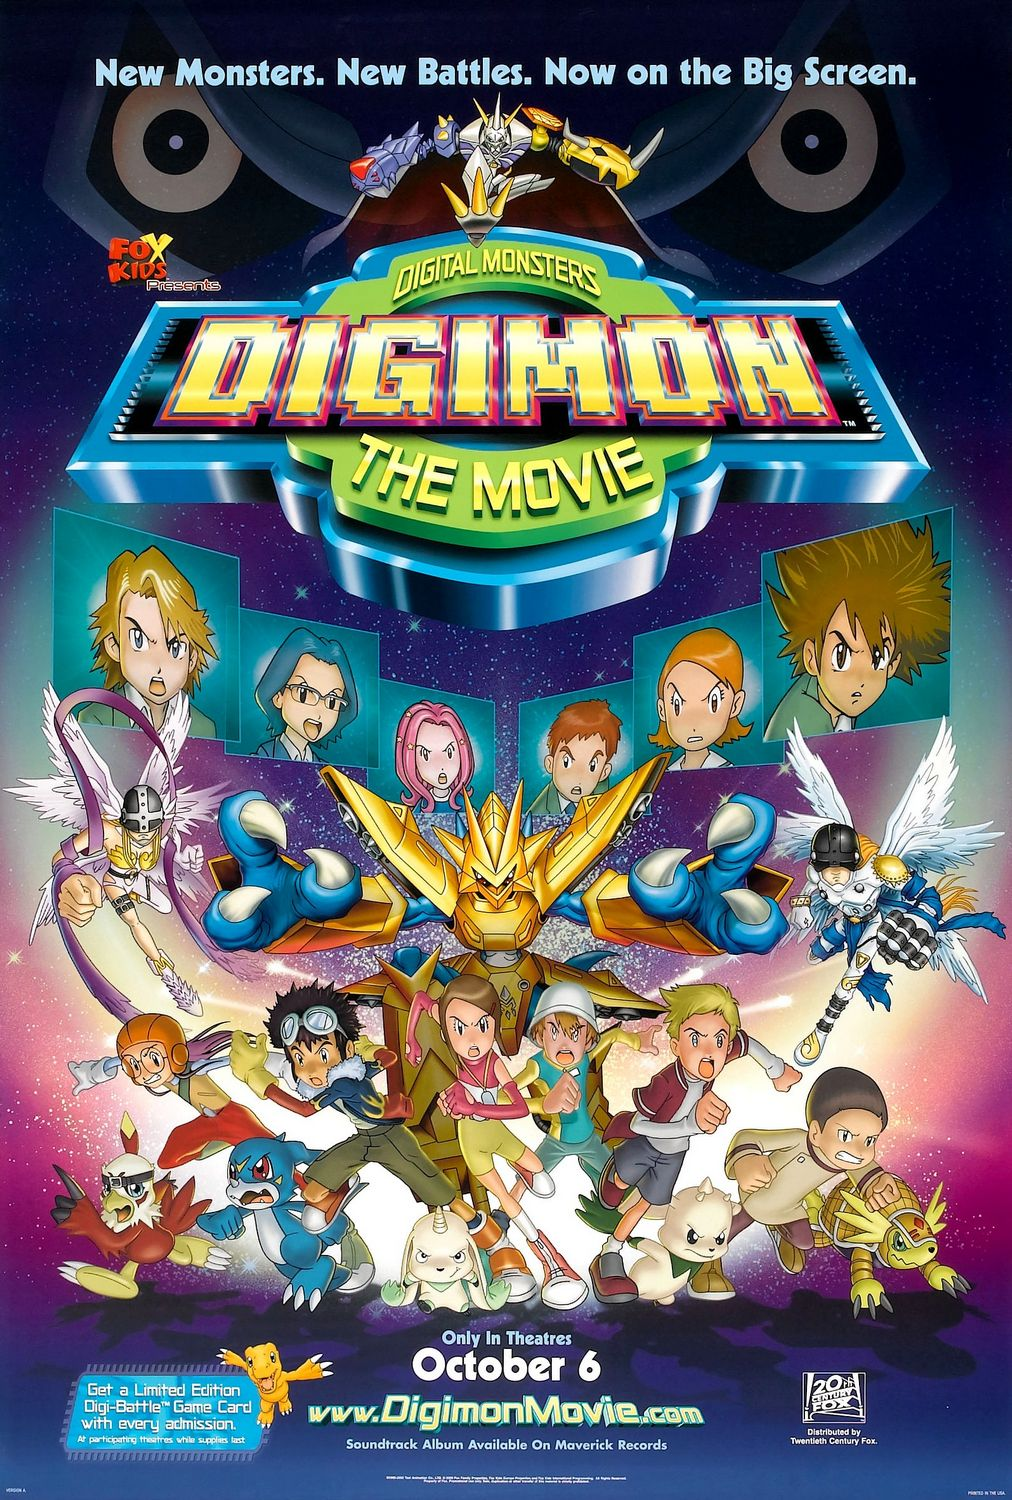 Digimon: The Movie | Monster Moviepedia | Fandom powered by Wikia